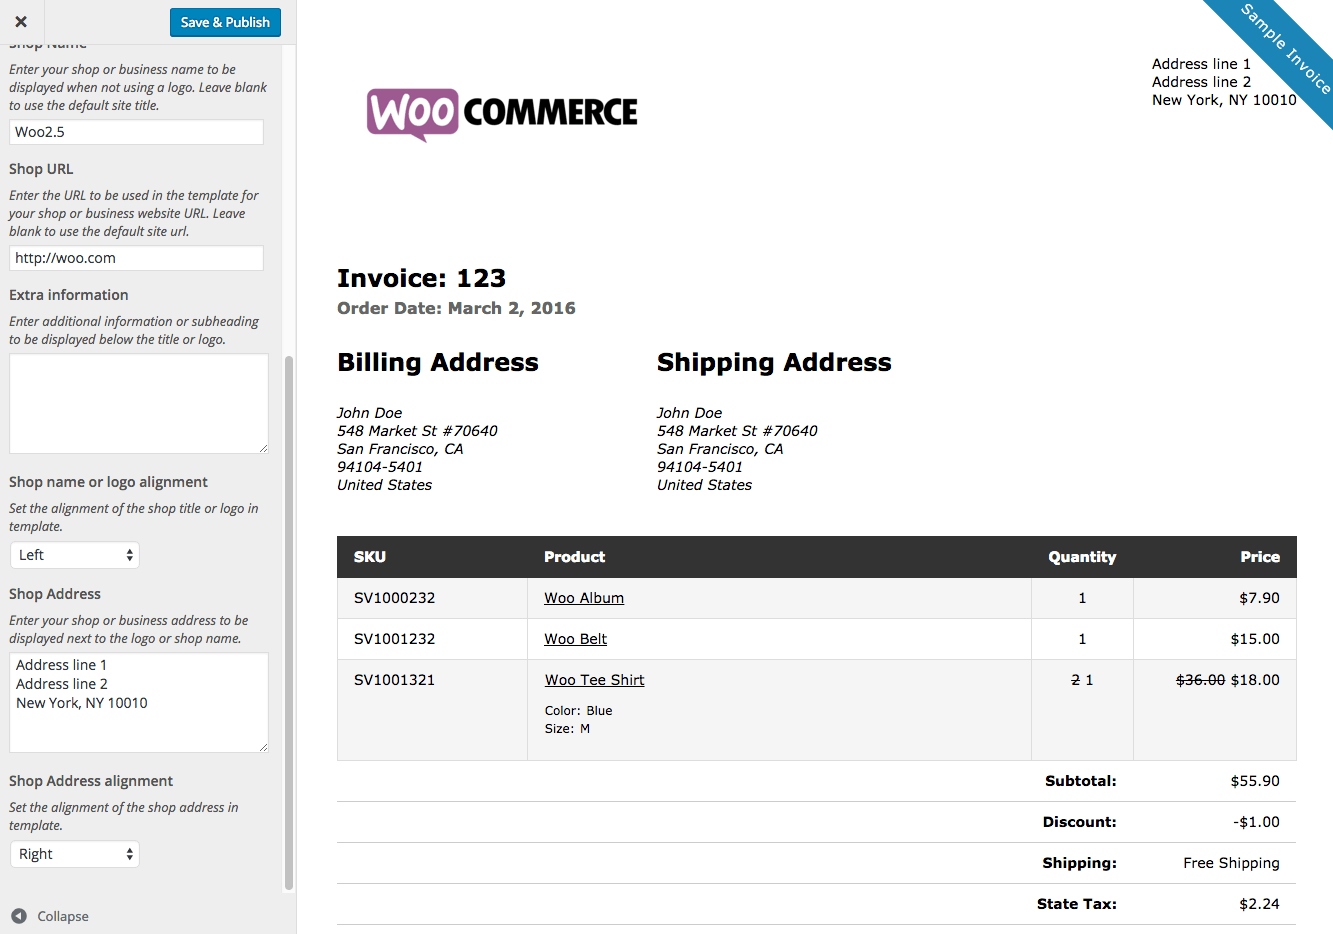 Coolmathgamesus  Nice Woocommerce Print Invoices Amp Packing Lists  Woocommerce Docs With Luxury Woocommerce Print Invoices  Packing Lists Customizer With Archaic How To Create And Invoice Also Ms Word Invoice In Addition Invoicing With Quickbooks And Audi Q Invoice Price As Well As How To Get Dealer Invoice Price Additionally Invoice Cover Sheet From Docswoocommercecom With Coolmathgamesus  Luxury Woocommerce Print Invoices Amp Packing Lists  Woocommerce Docs With Archaic Woocommerce Print Invoices  Packing Lists Customizer And Nice How To Create And Invoice Also Ms Word Invoice In Addition Invoicing With Quickbooks From Docswoocommercecom